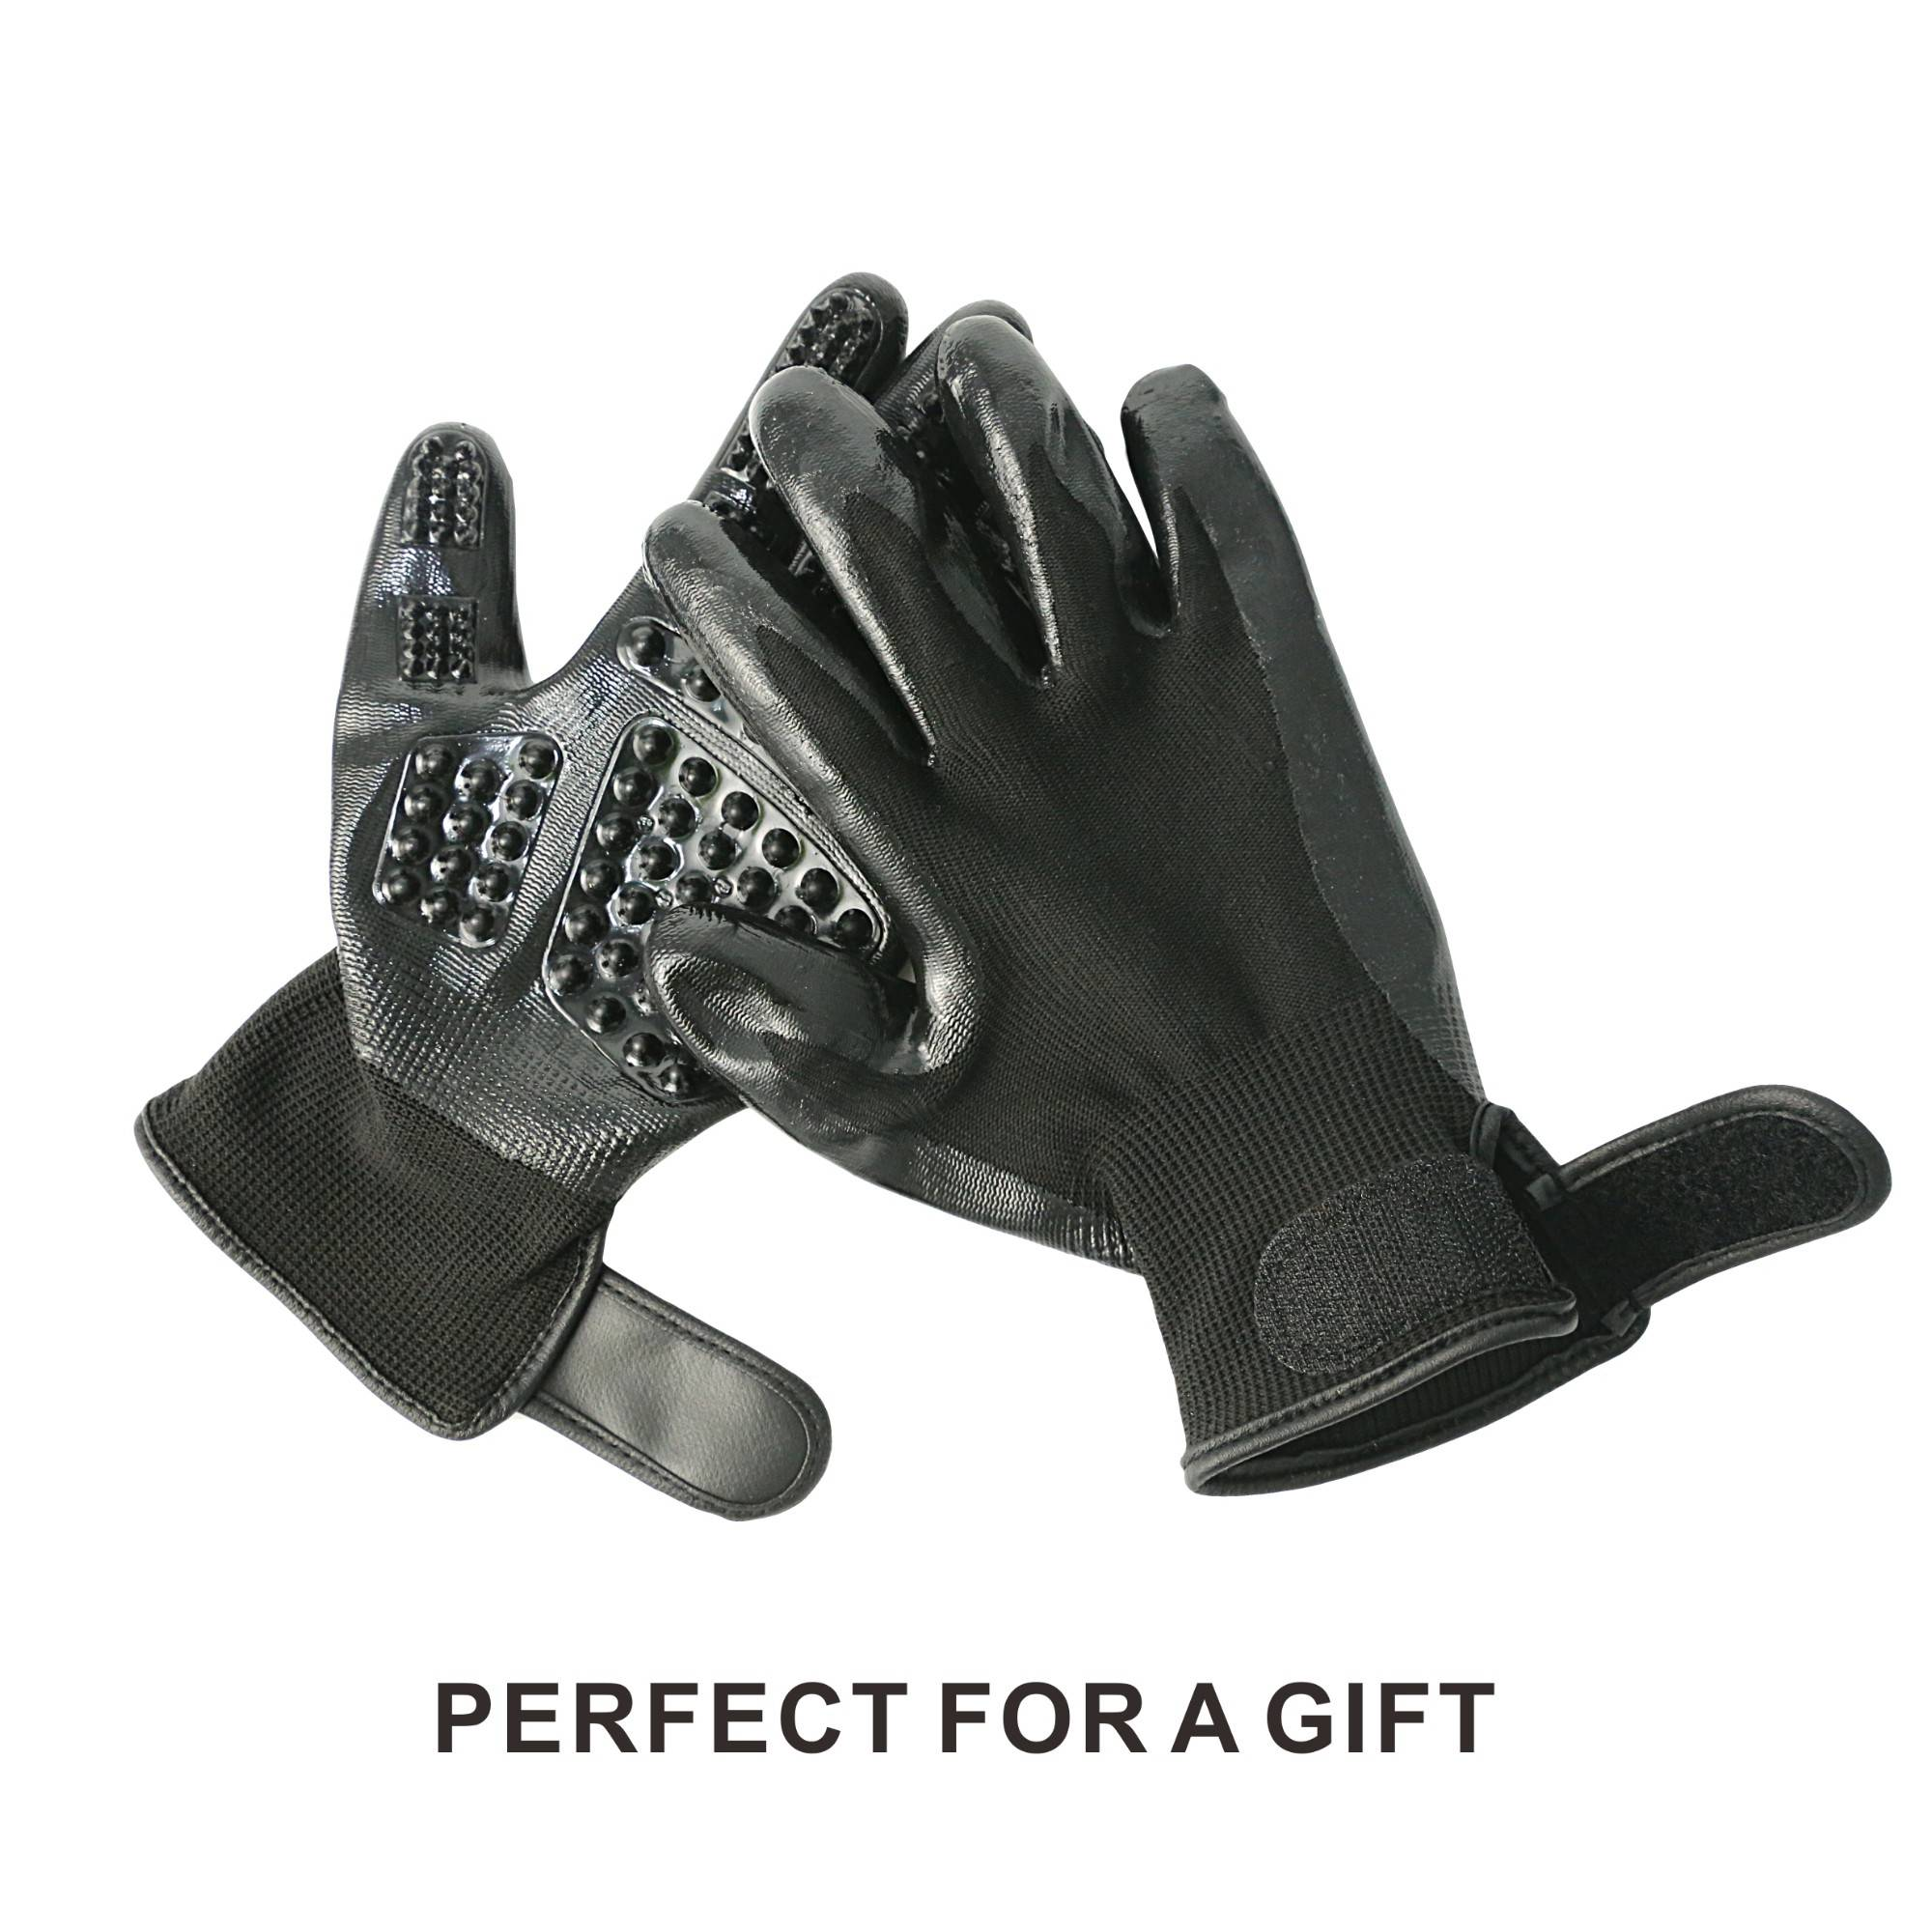 KIM YUAN Gloves-Left&Right-Enhanced,Five Finger Design-for Cats,Dogs&Horses-Long&Short Fur-Gentle,De-Shedding